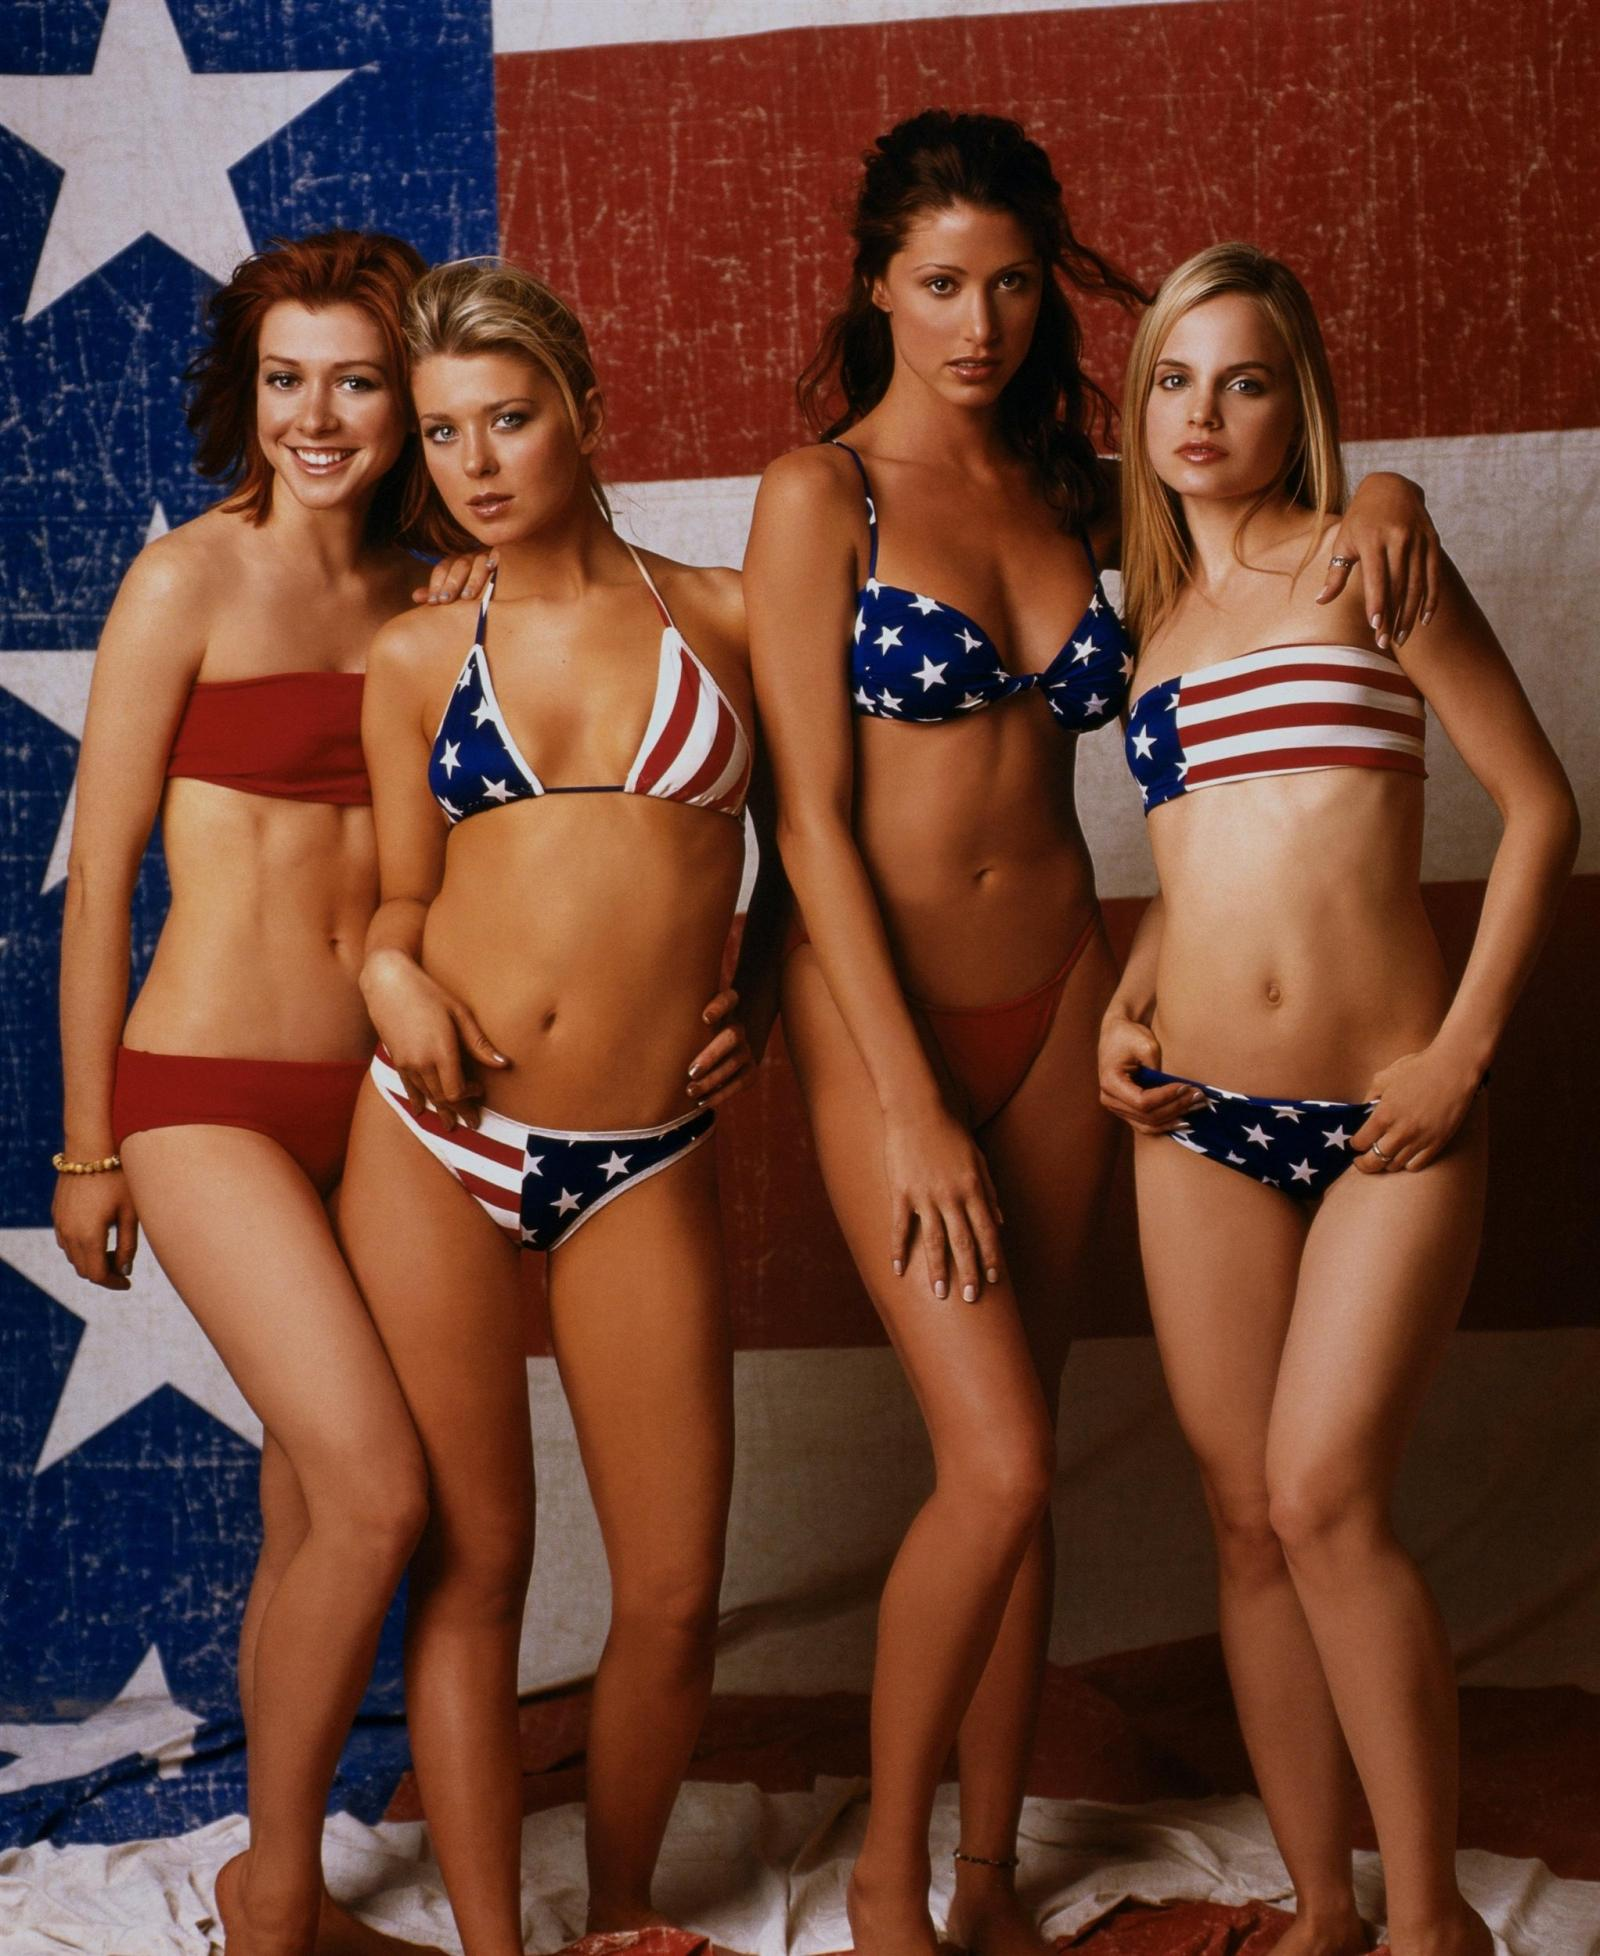 American pie hot girls